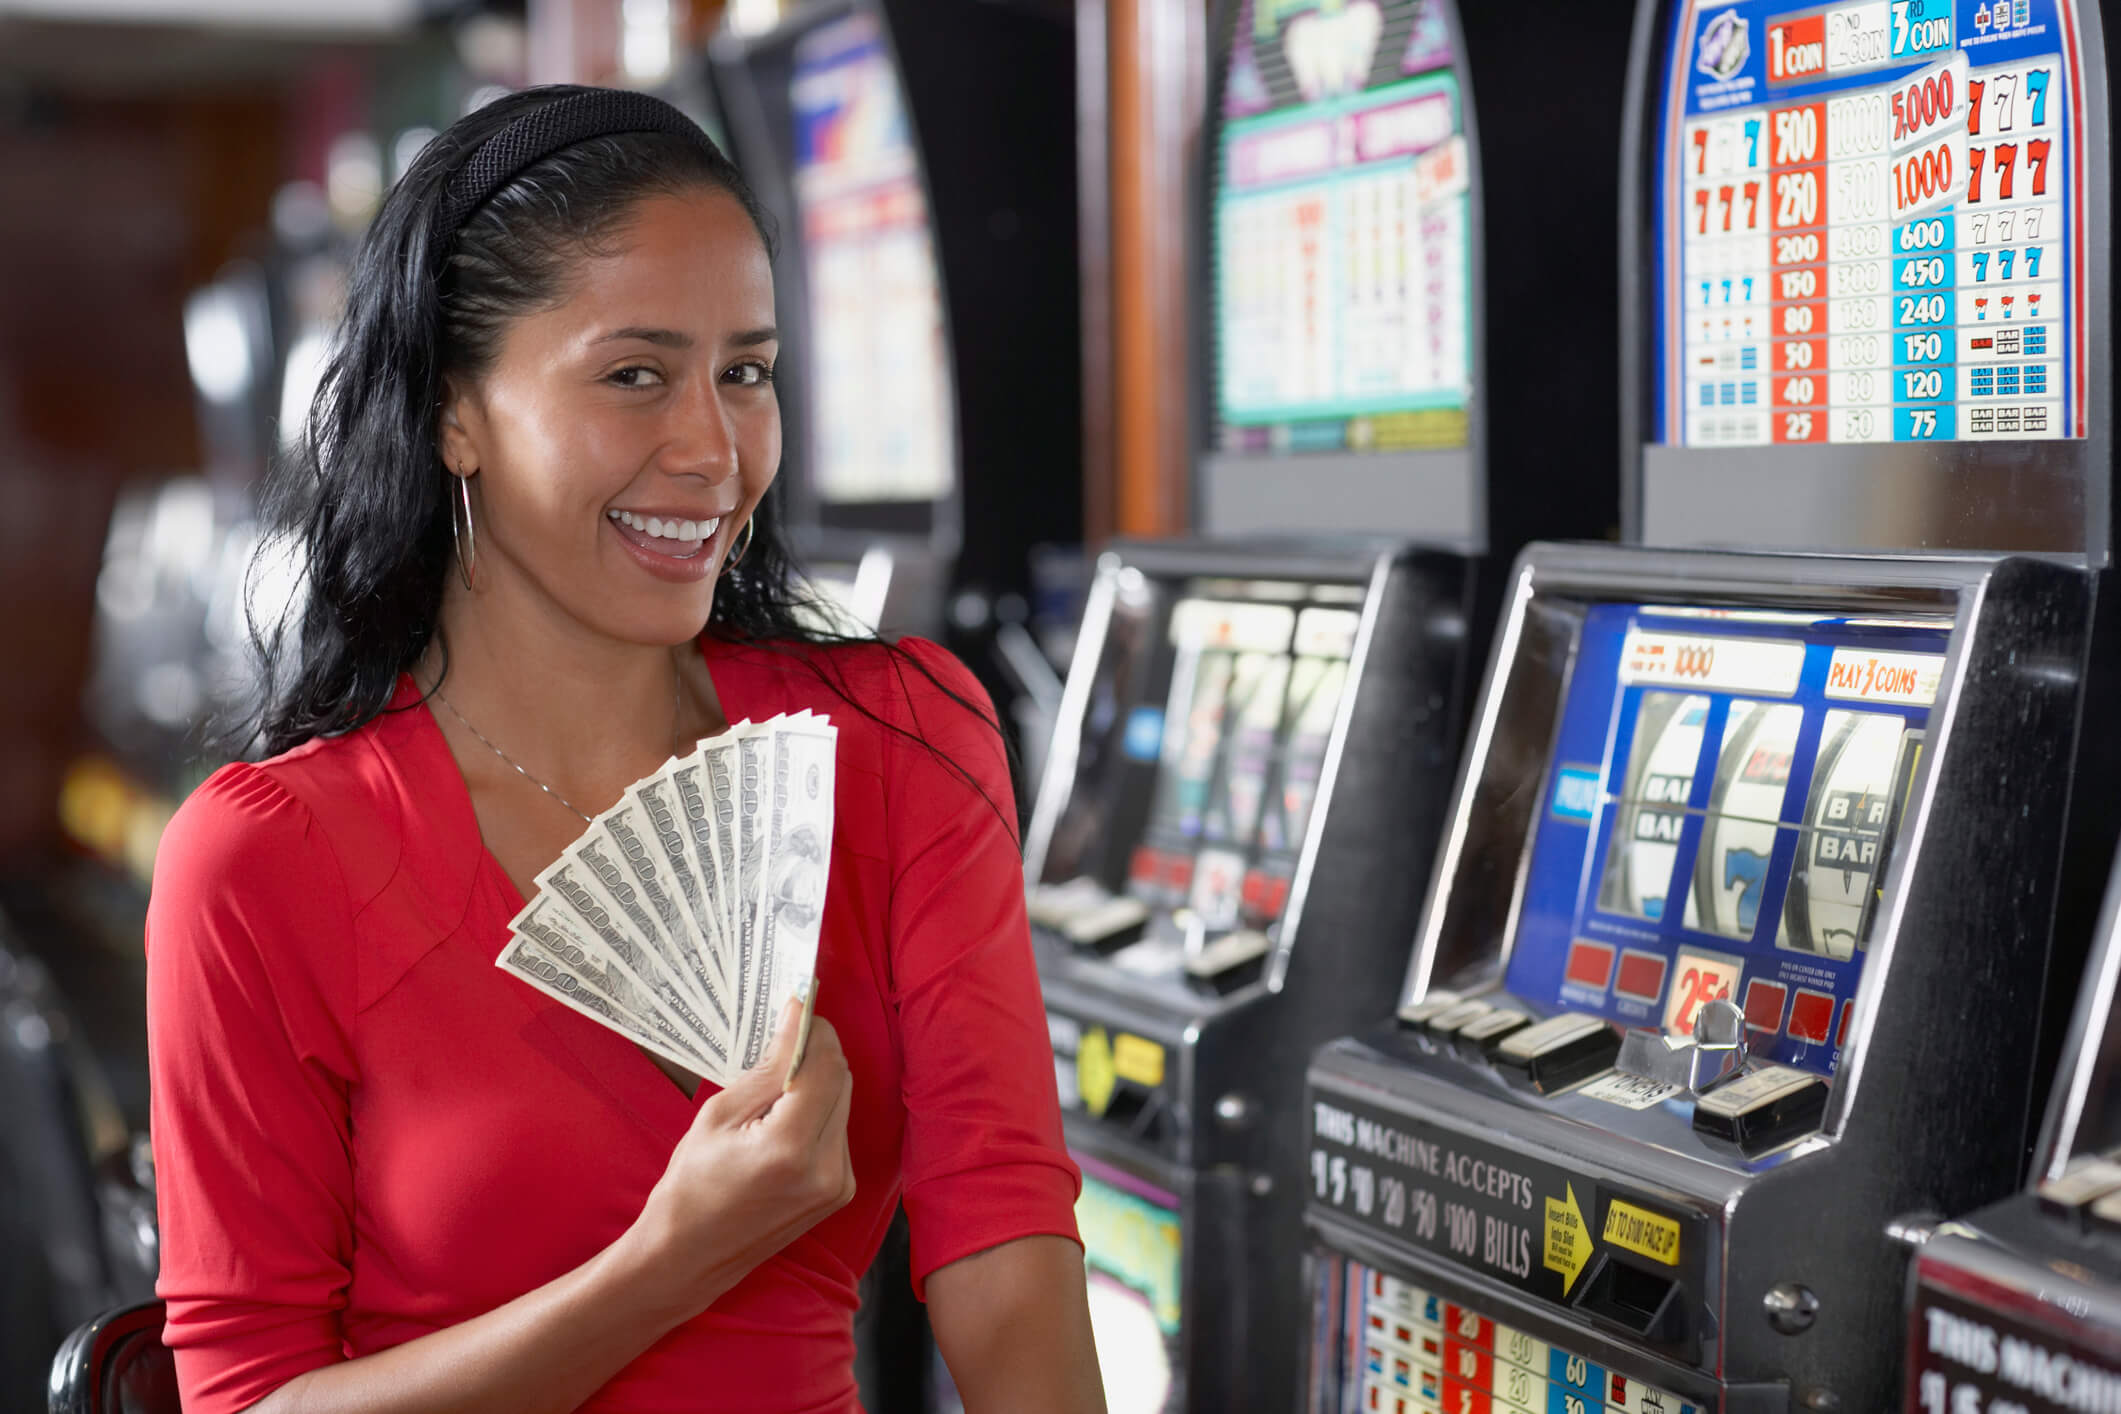 Tips For Slots – How to Win at Slots